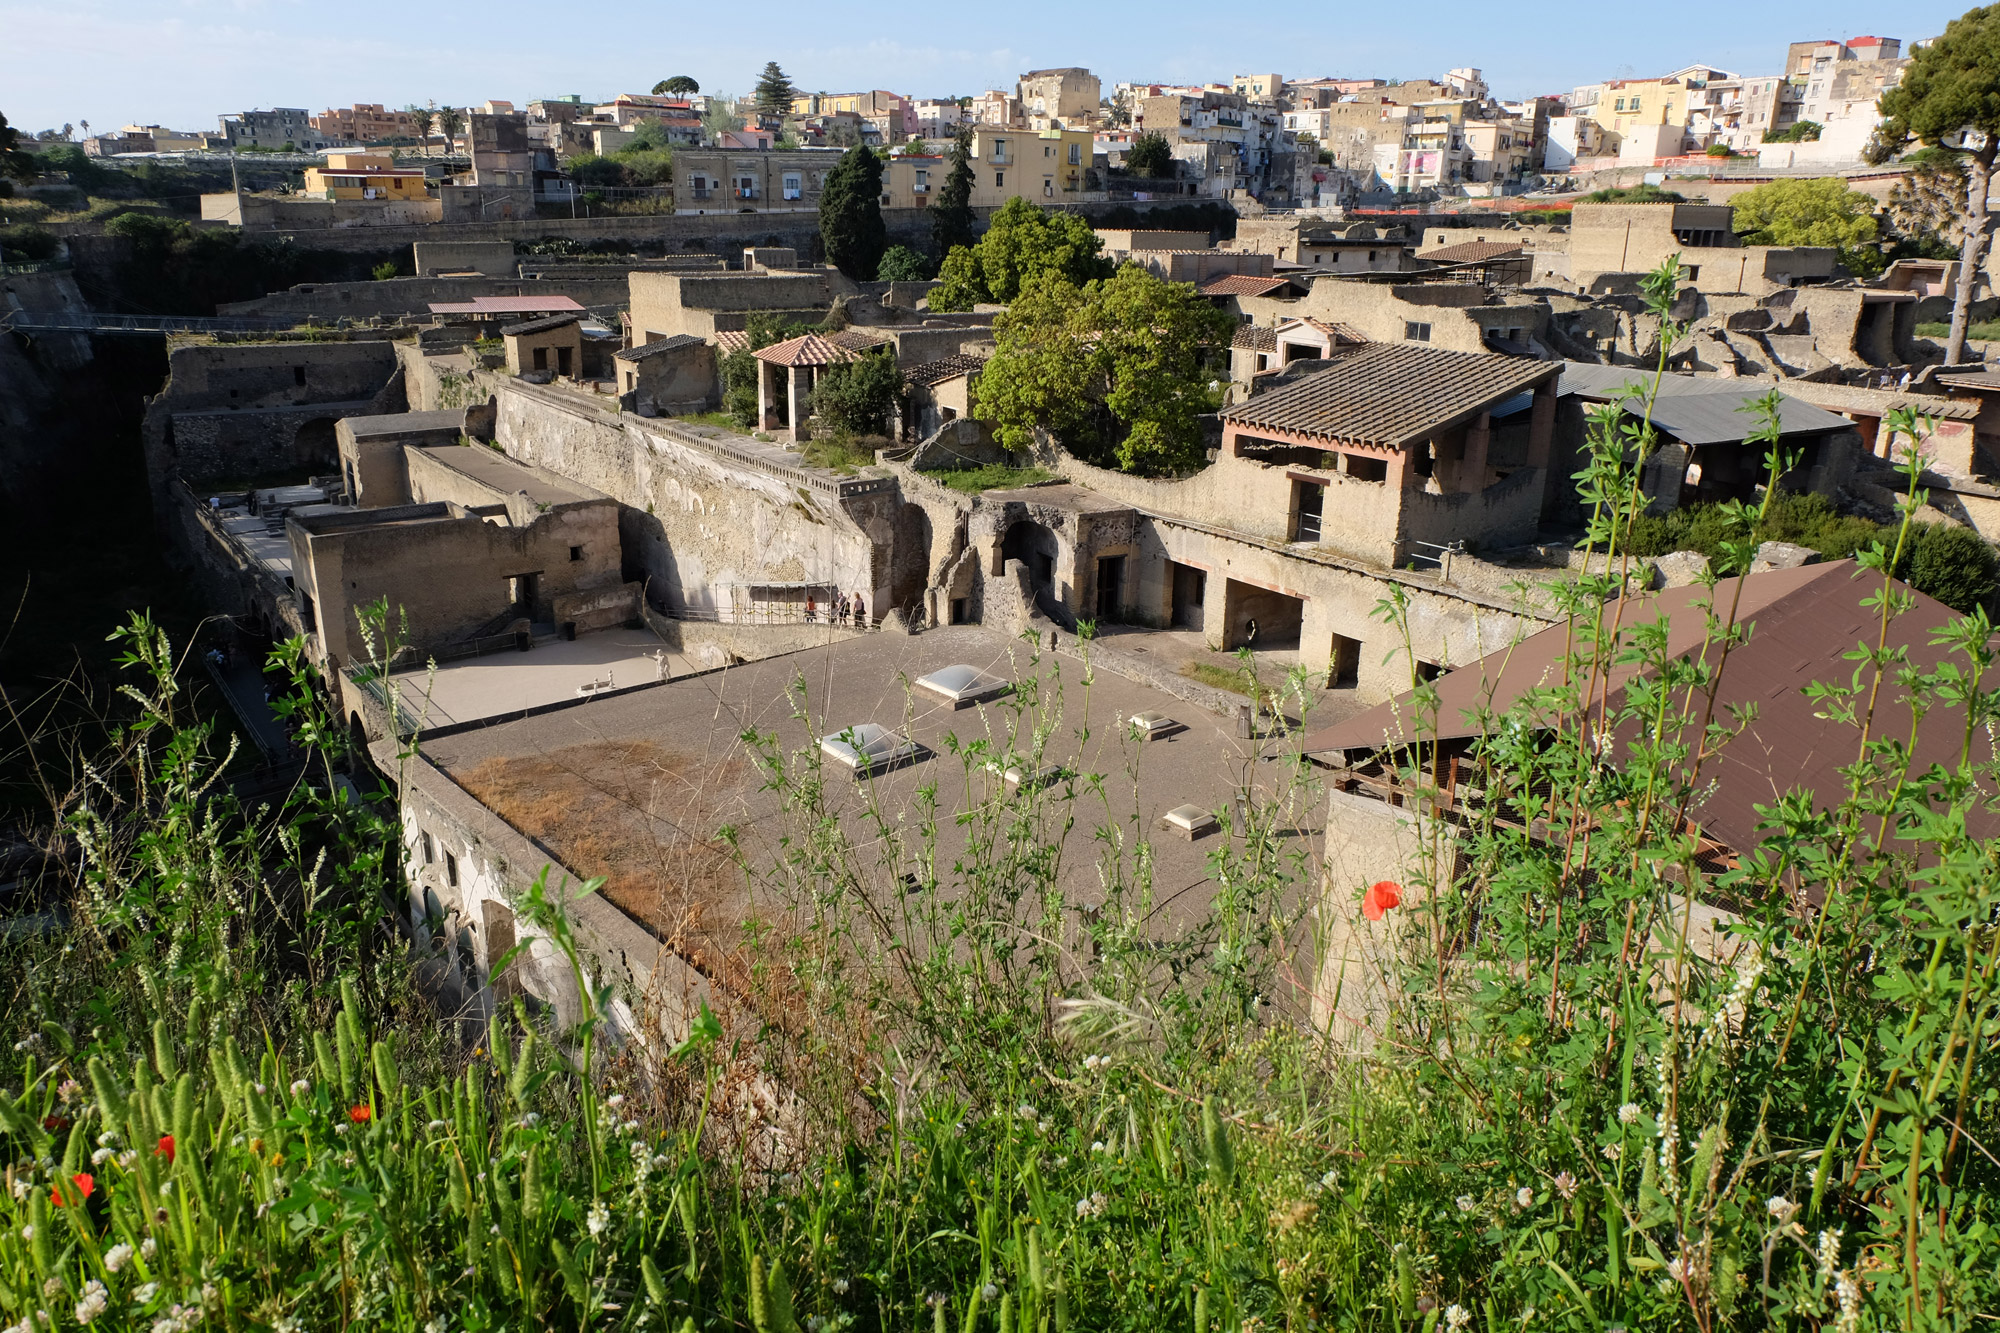 Herculaneum from ground level in the modern-day town